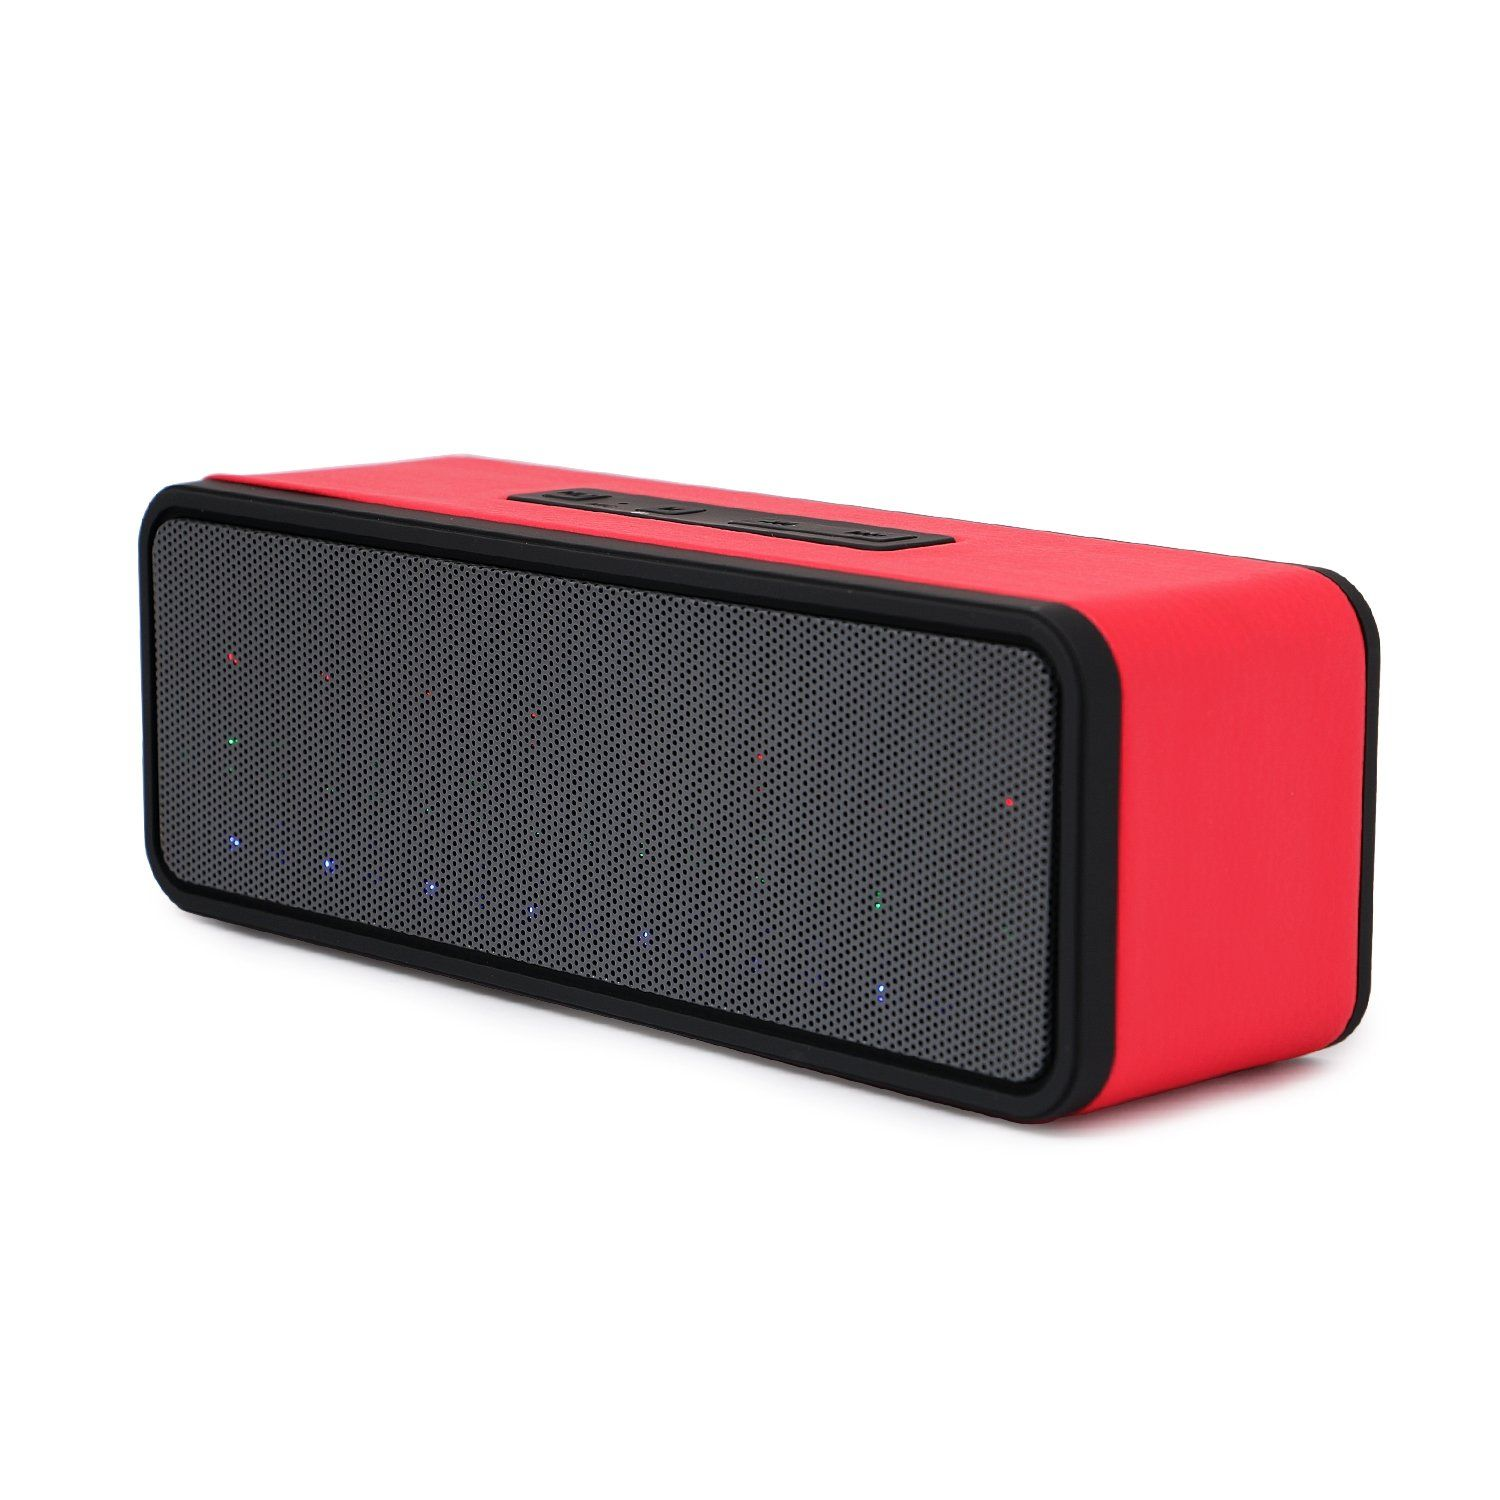 dcb35b1d6a8 Buy Aavahan Bluetooth Speakers XC601 Online at Low prices in India on  Winsant